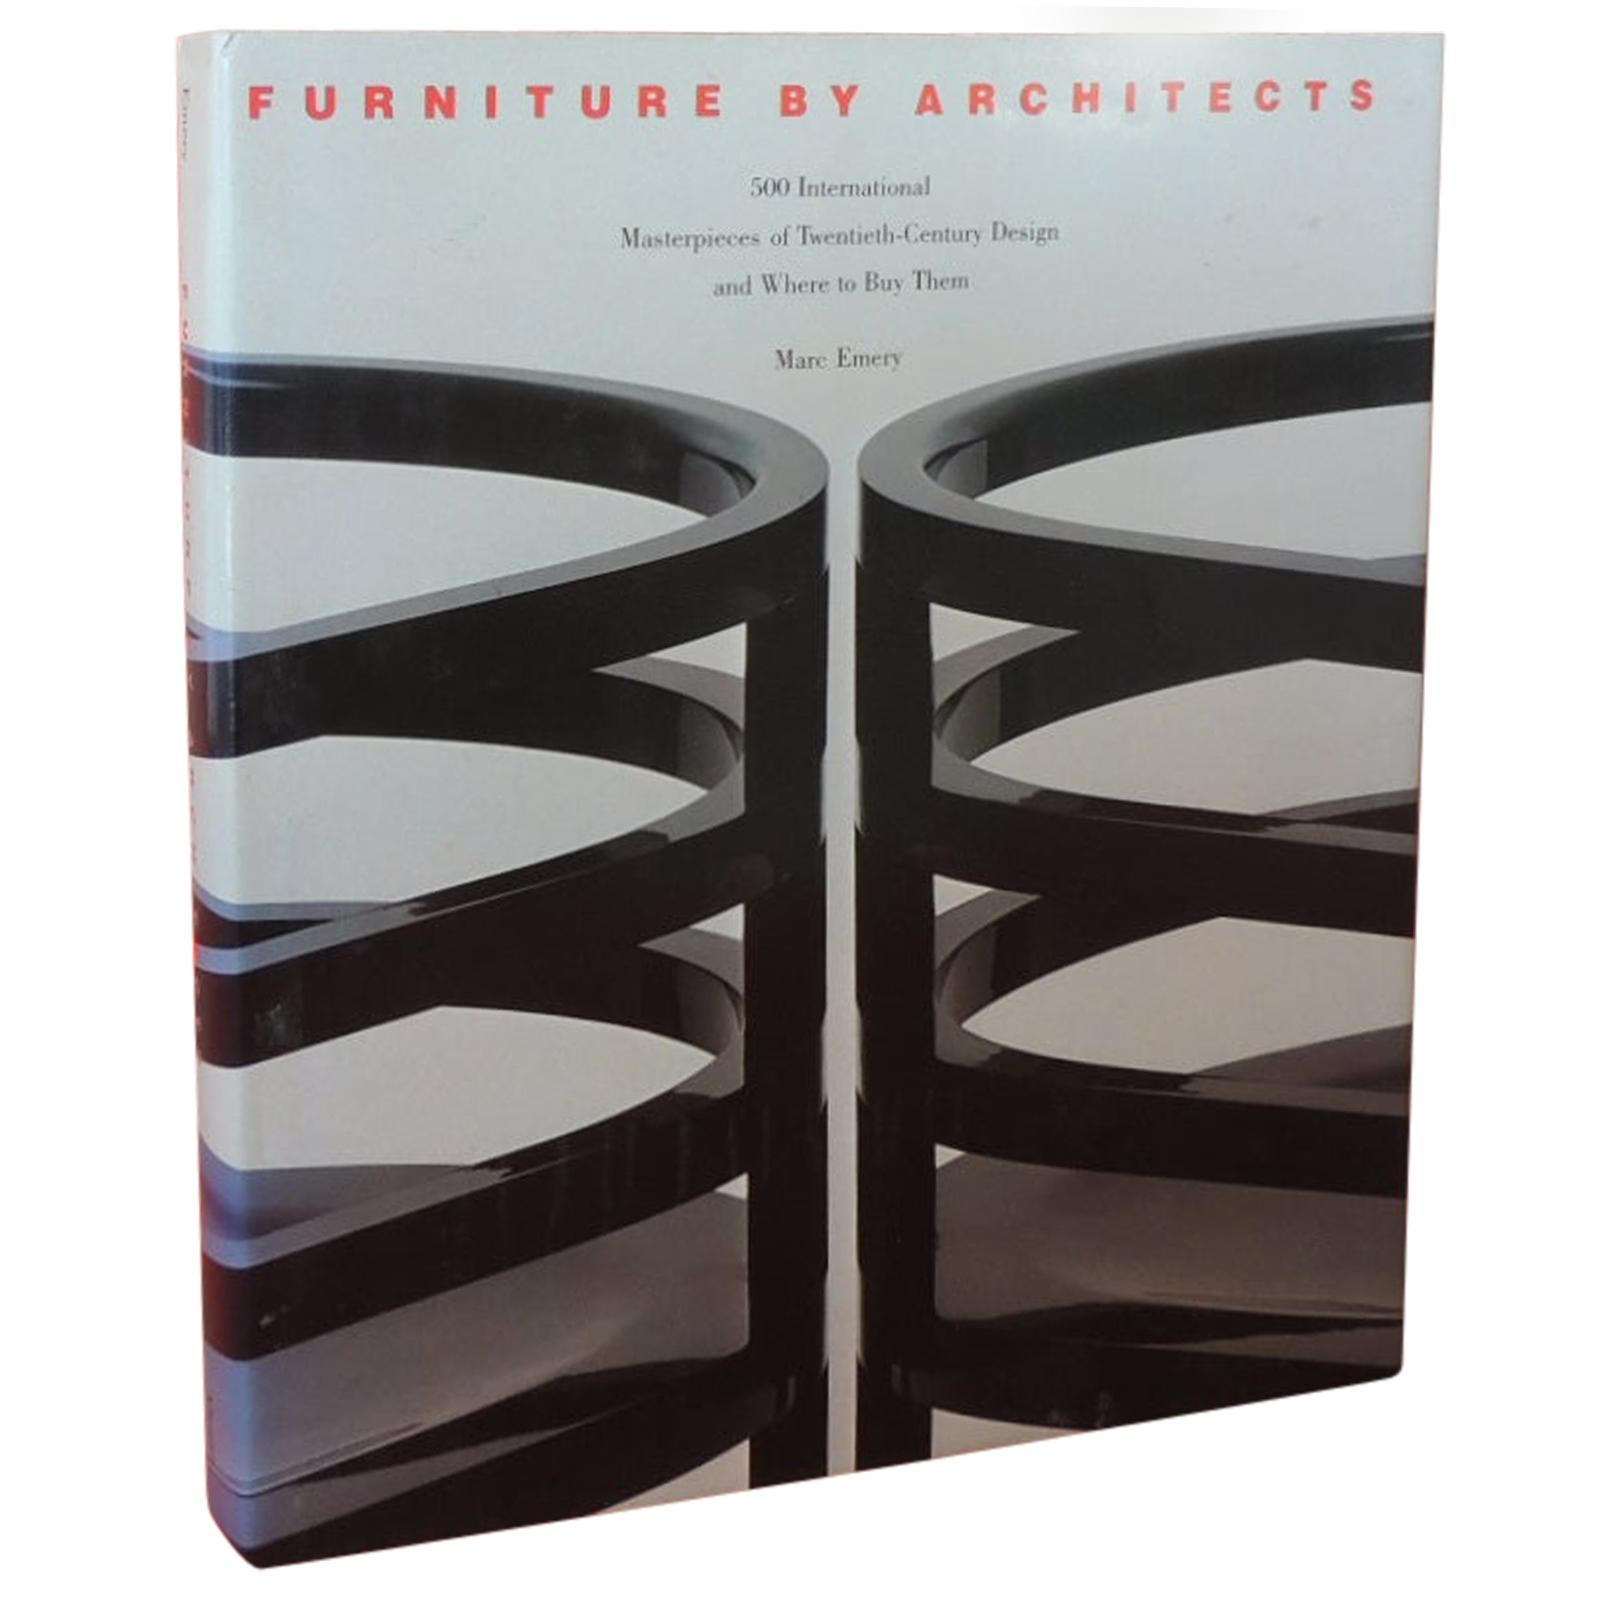 Furniture by Architects Hard-Cover Decorative Vintage Coffee Table Book